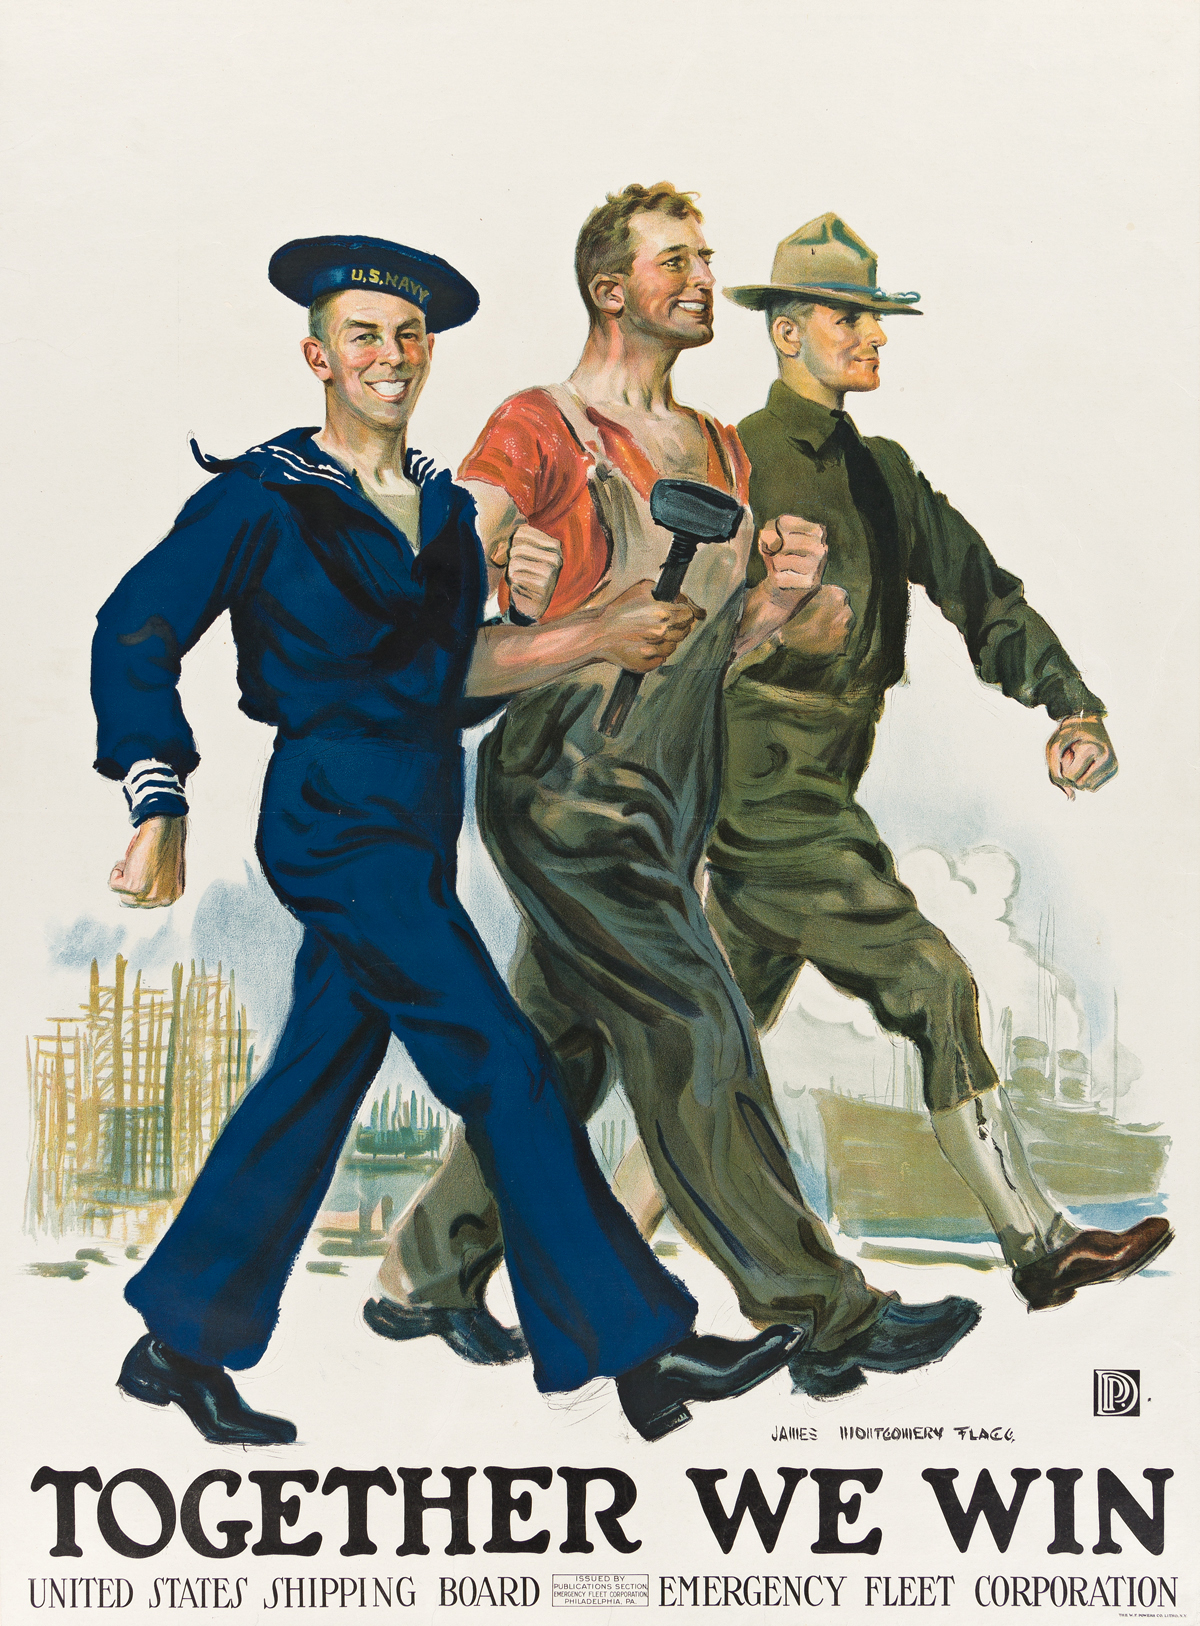 JAMES MONTGOMERY FLAGG (1870-1960).  TOGETHER WE WIN. Circa 1918. 39x29 inches, 99x73½ cm. The W.F. Powers Co. Litho, New York.